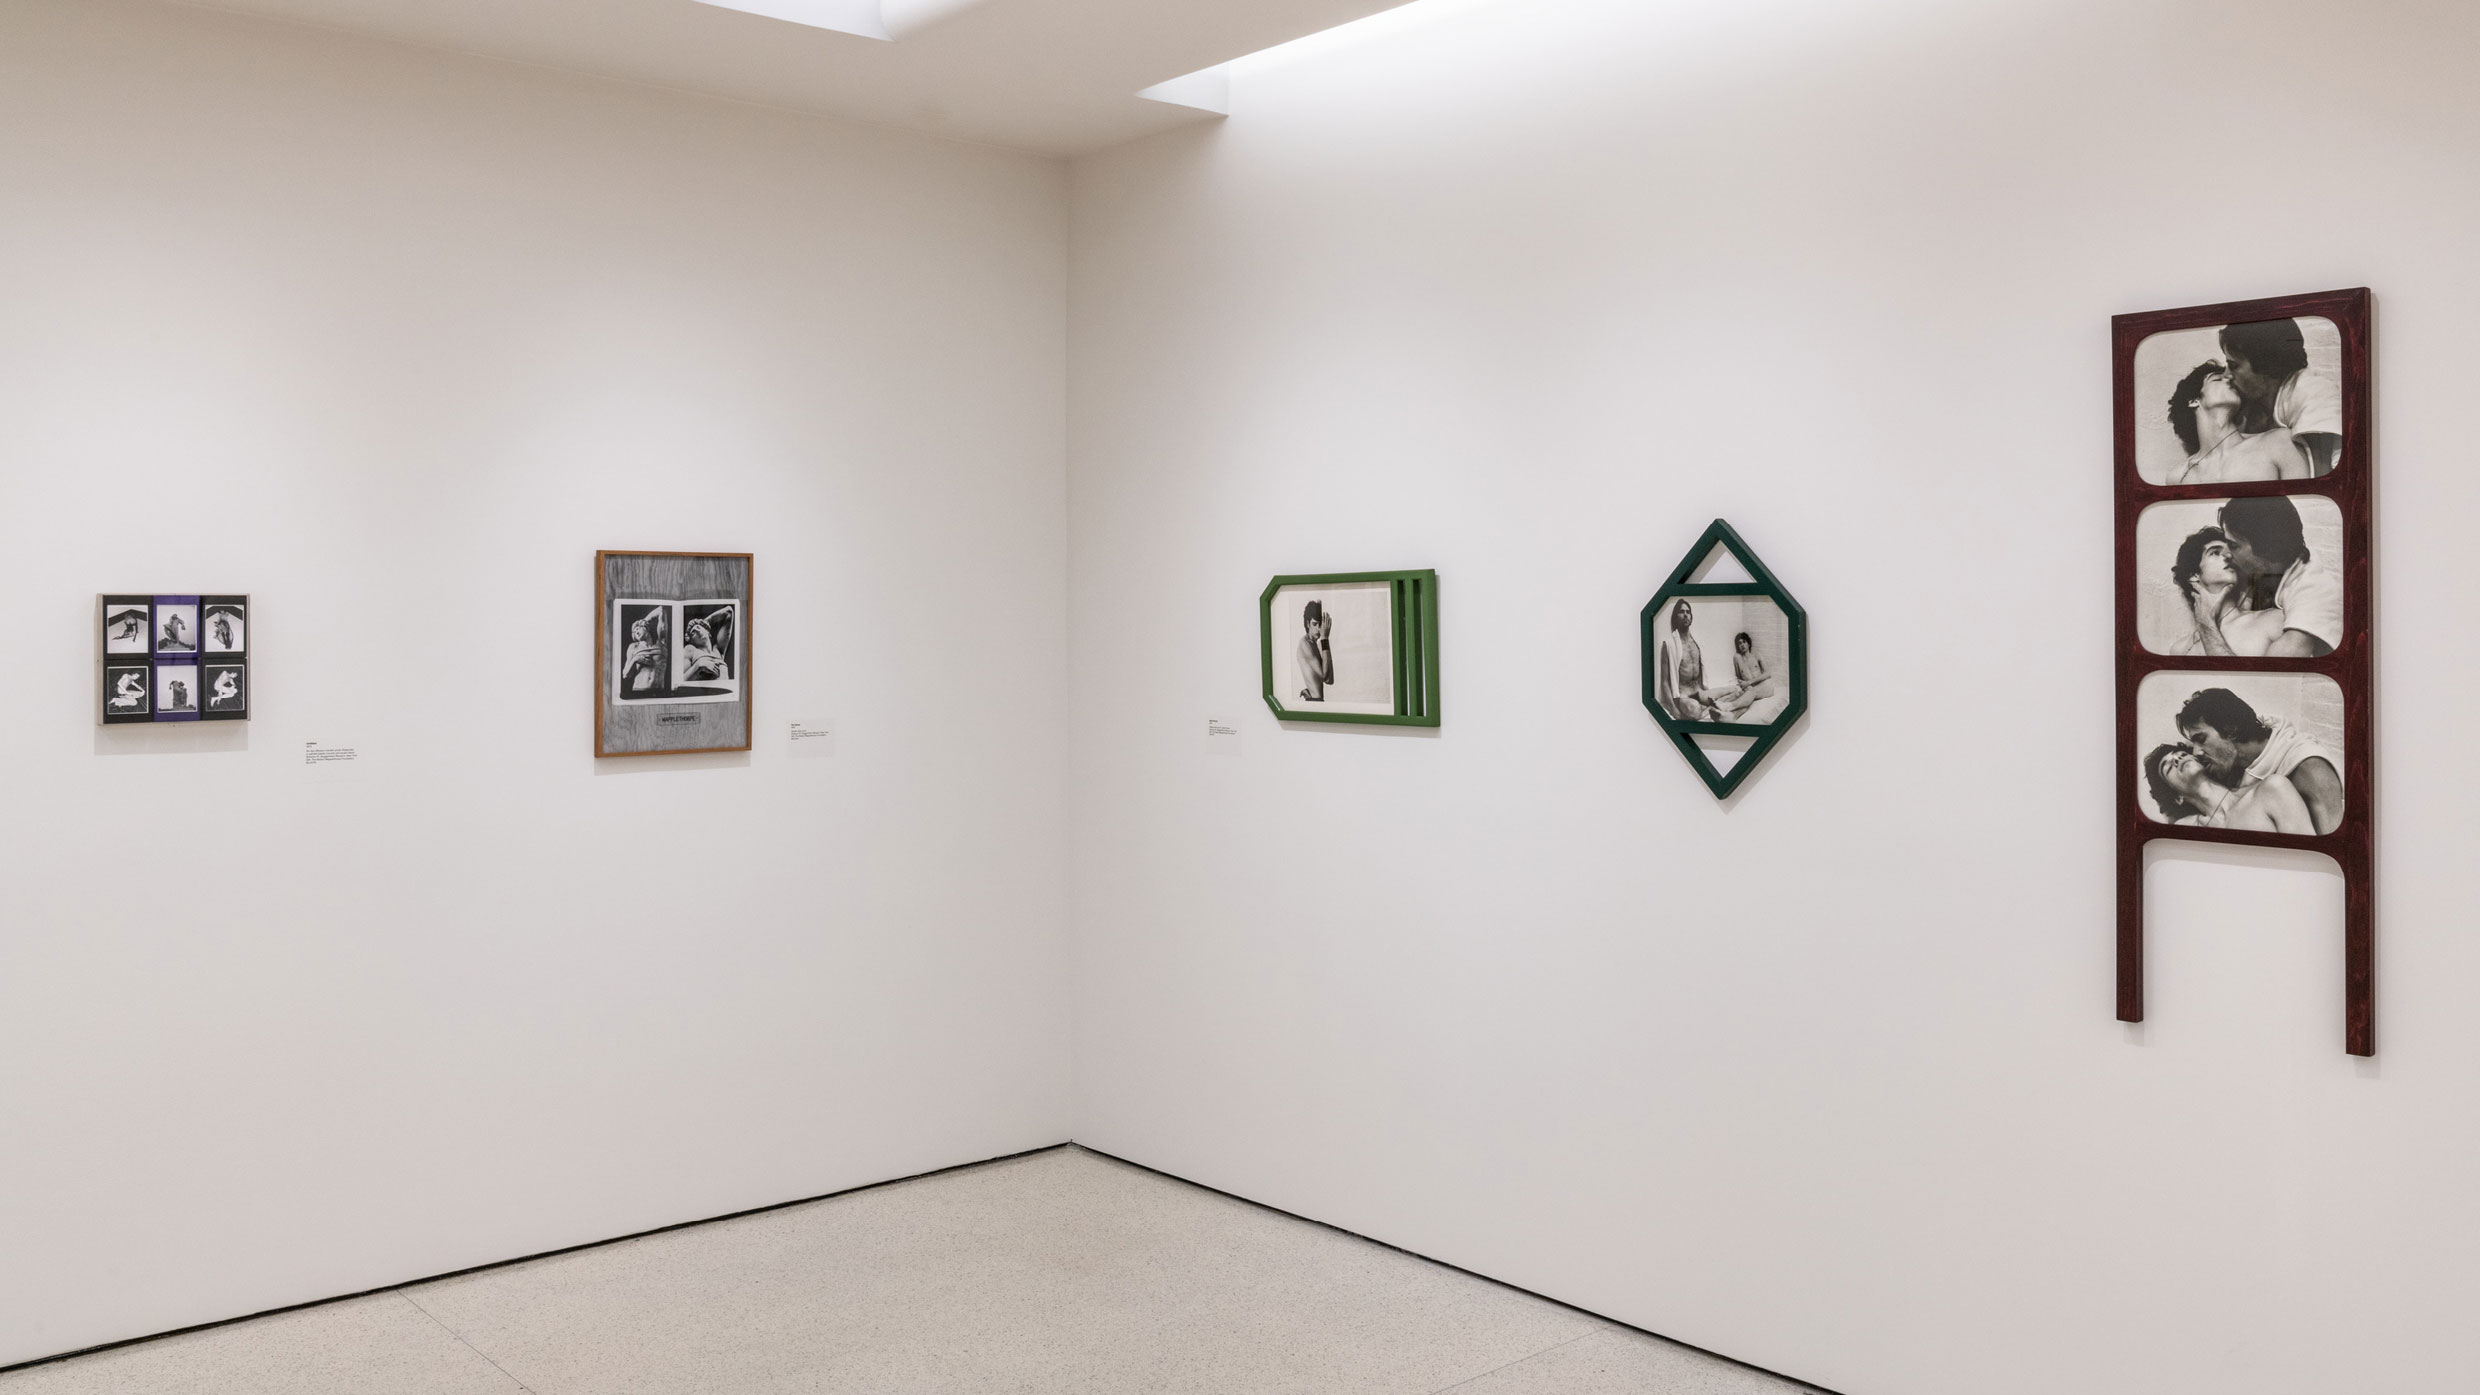 Installation view, Implicit Tensions: Mapplethorpe Now, Solomon R. Guggenheim Museum, New York, January 25–July 10, 2019. Photo: David Heald